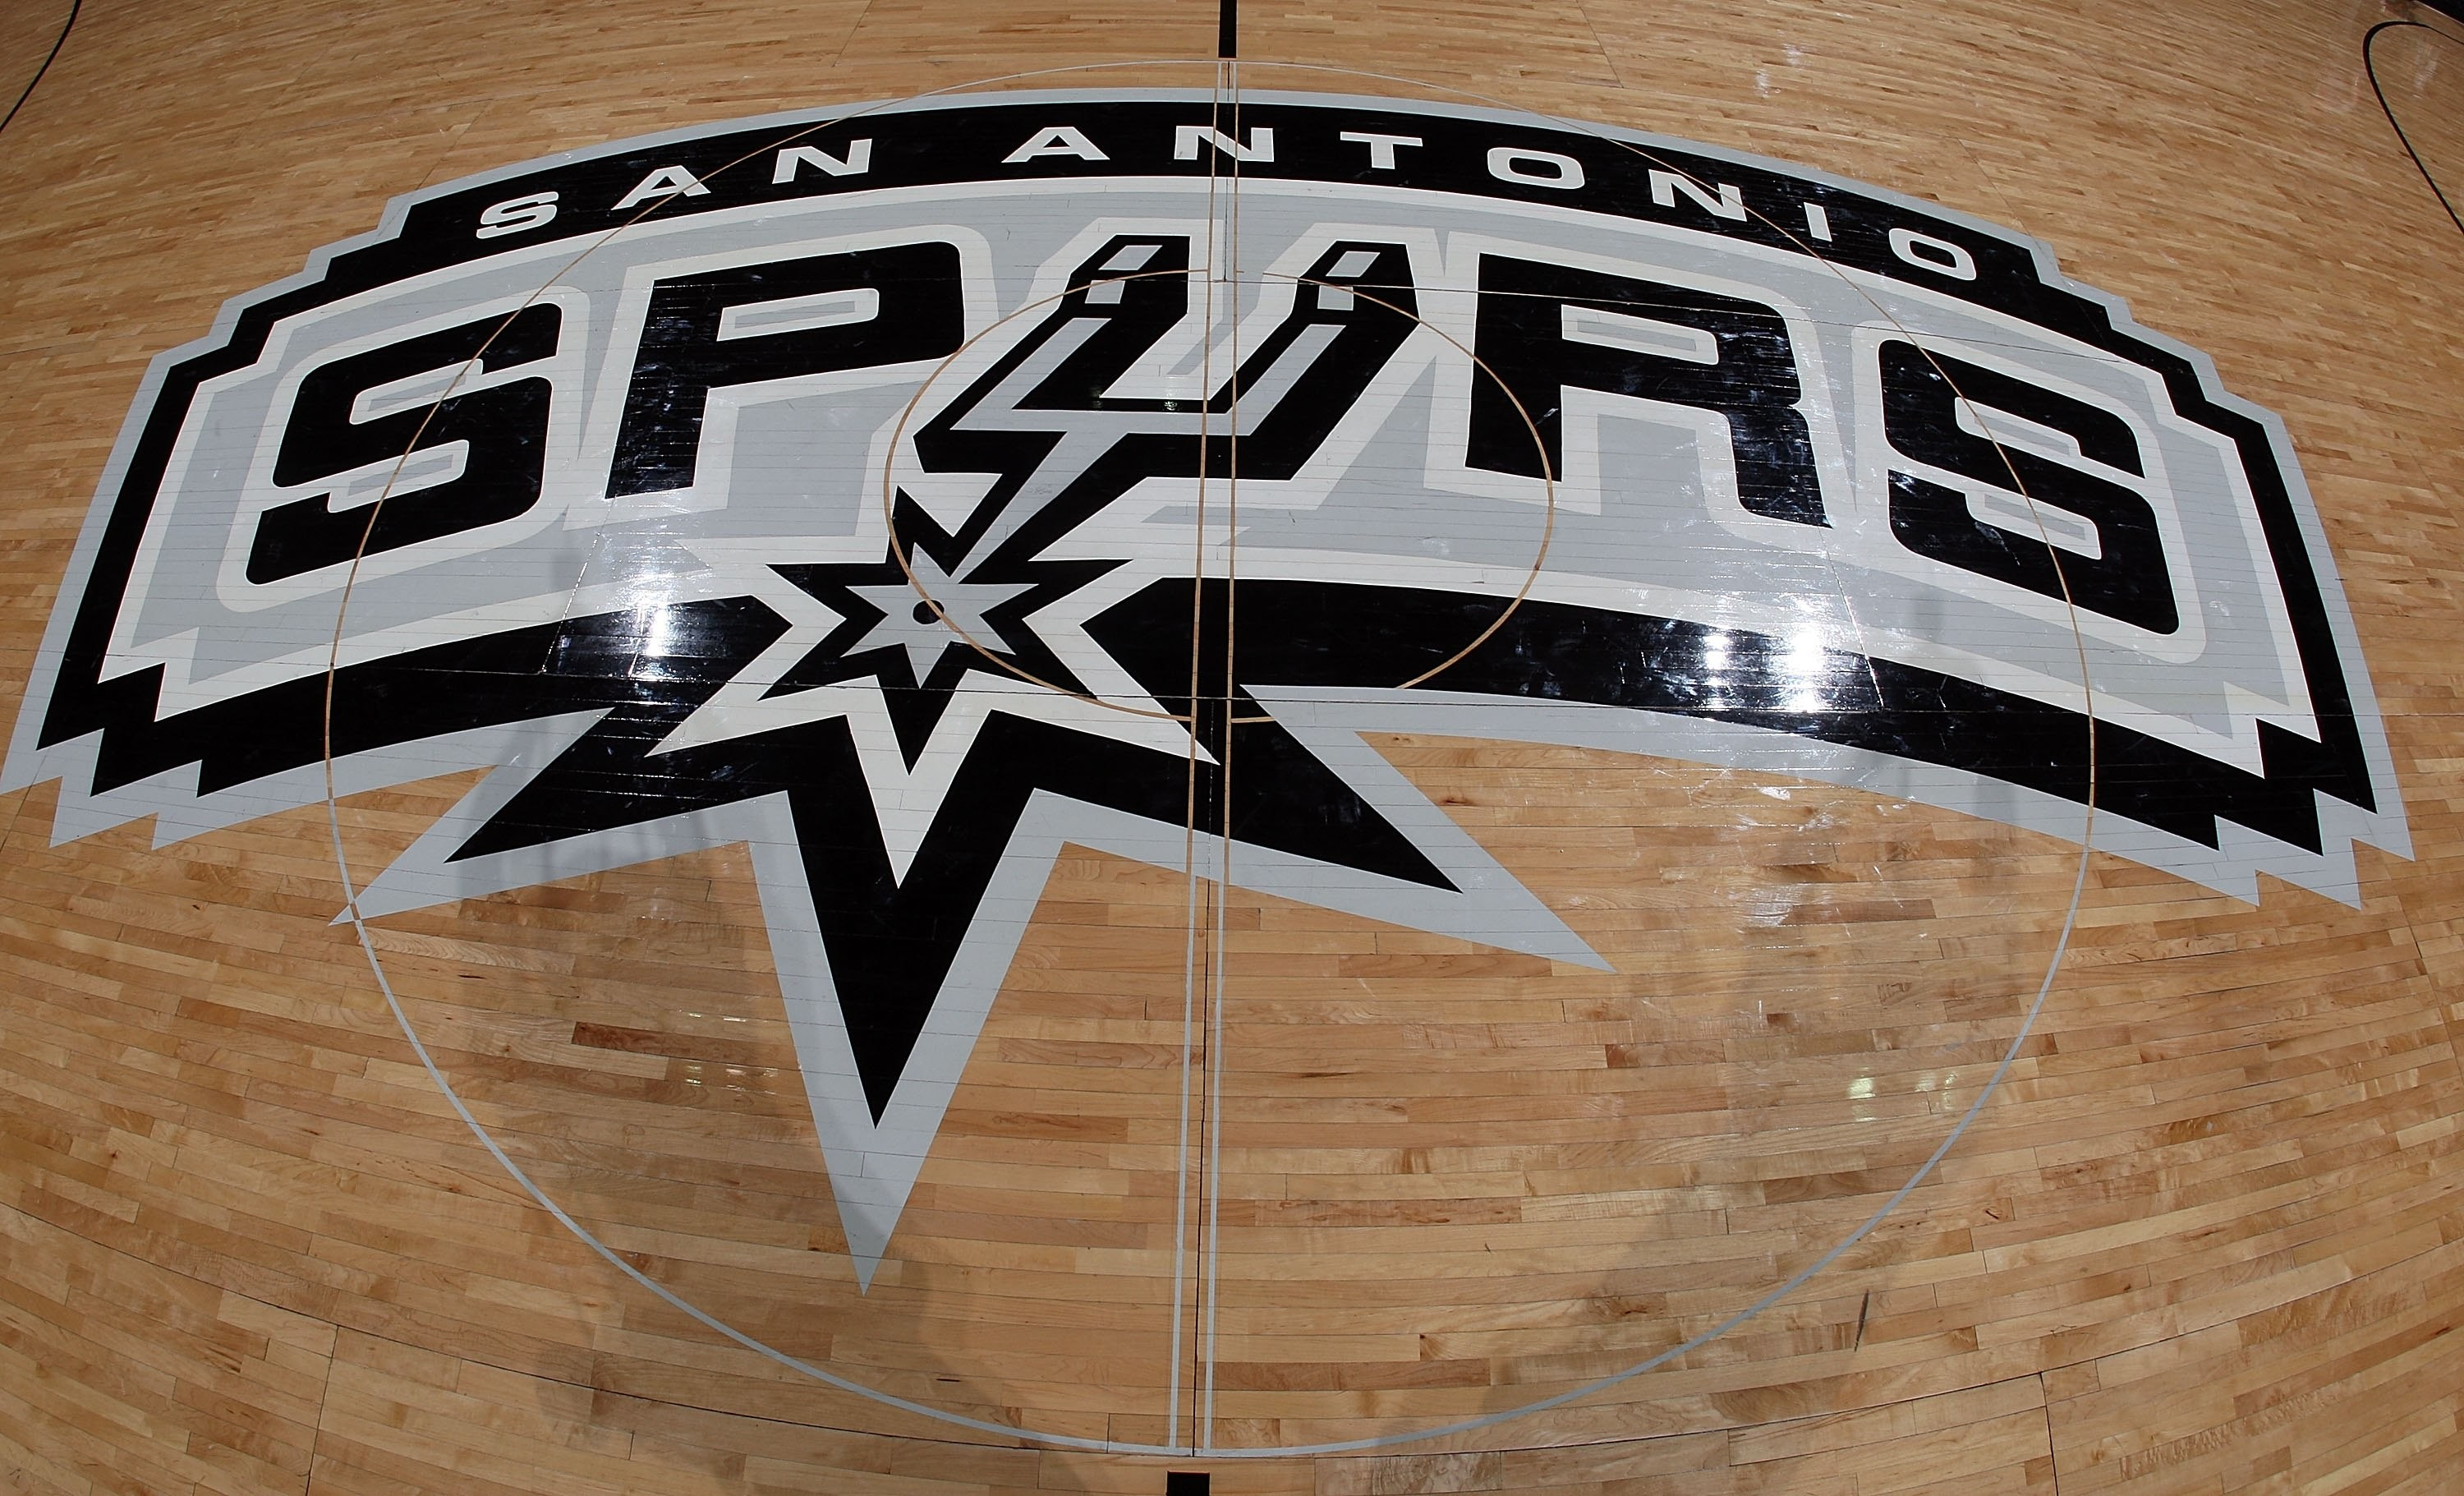 Spurs wallpaper free download enam wallpaper spurs images 69415927 free download by meredith ehrhart source san antonio spurs wallpaper 2018 56 images voltagebd Image collections